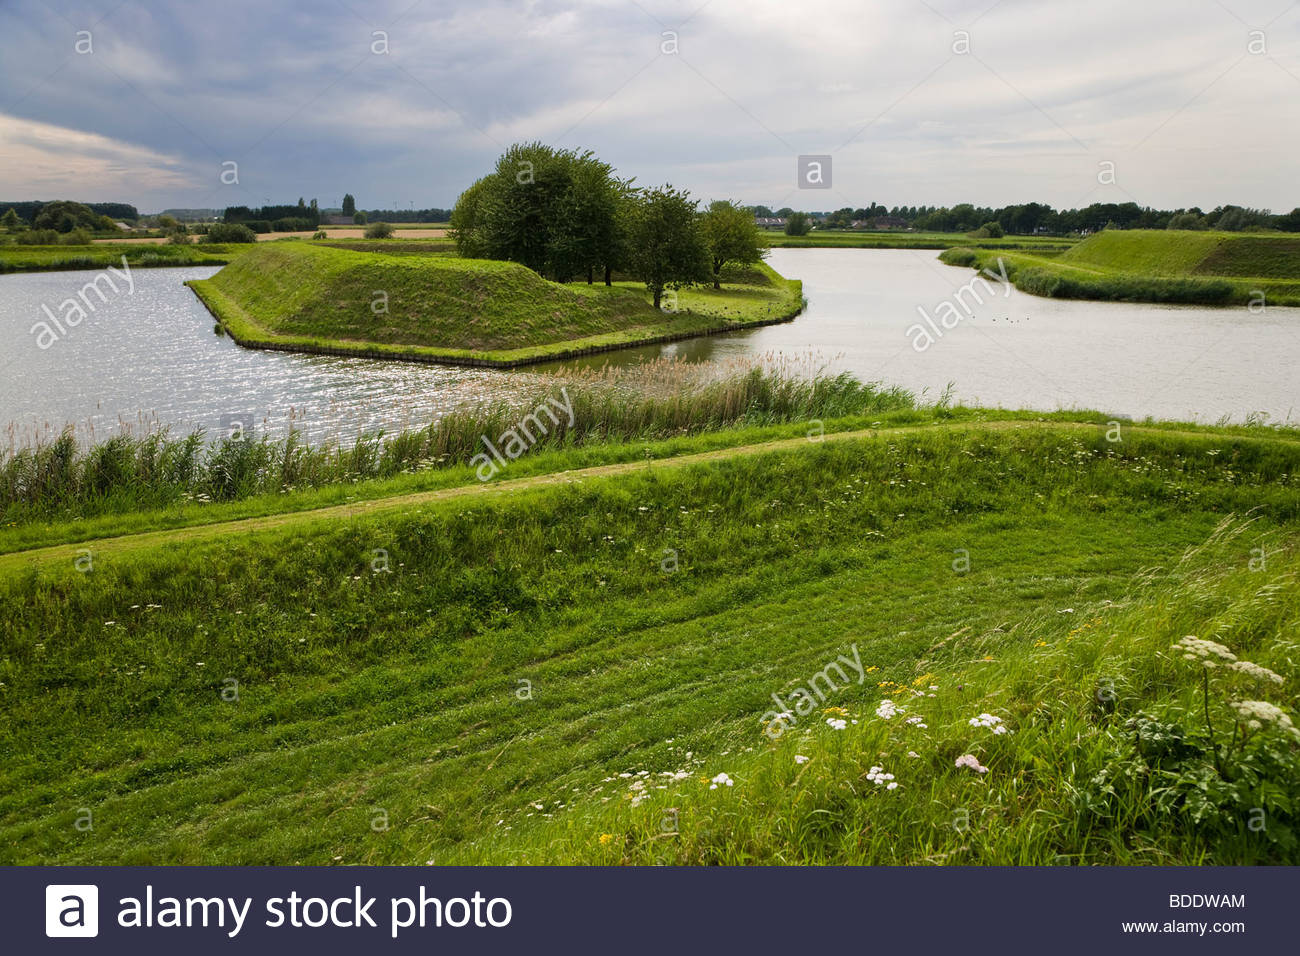 landscape fortification historical star fort moat wall fortress protection safety defense tourism Heusden Netherlands - Stock Image